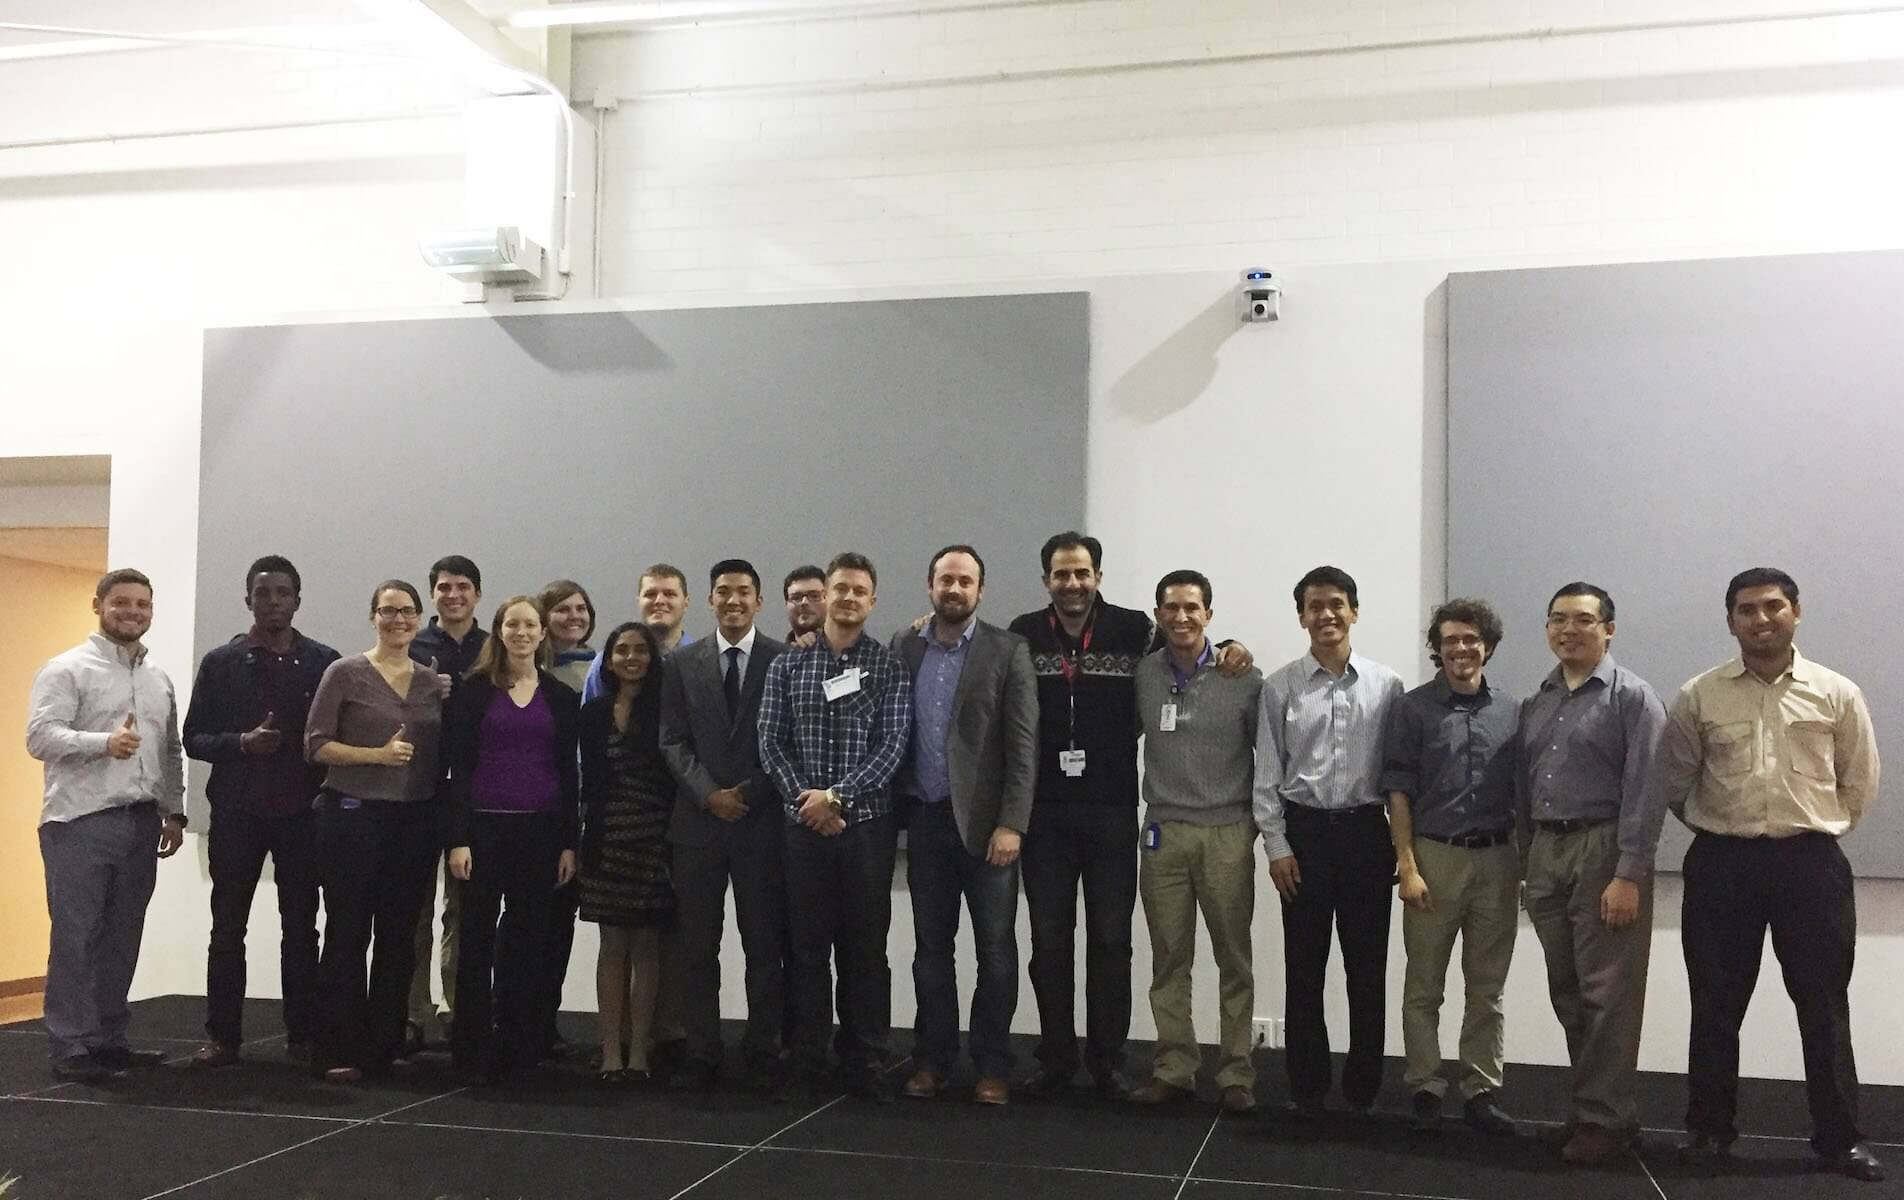 A group of about 20 people, including those from Baylor College of Medicine, Texas A&M University and the corporate world, gathered Dec. 9 to 11 to design a simulation workstation where surgeons and residents could practice the complex aortic repair surgery based on a CT patient scan.